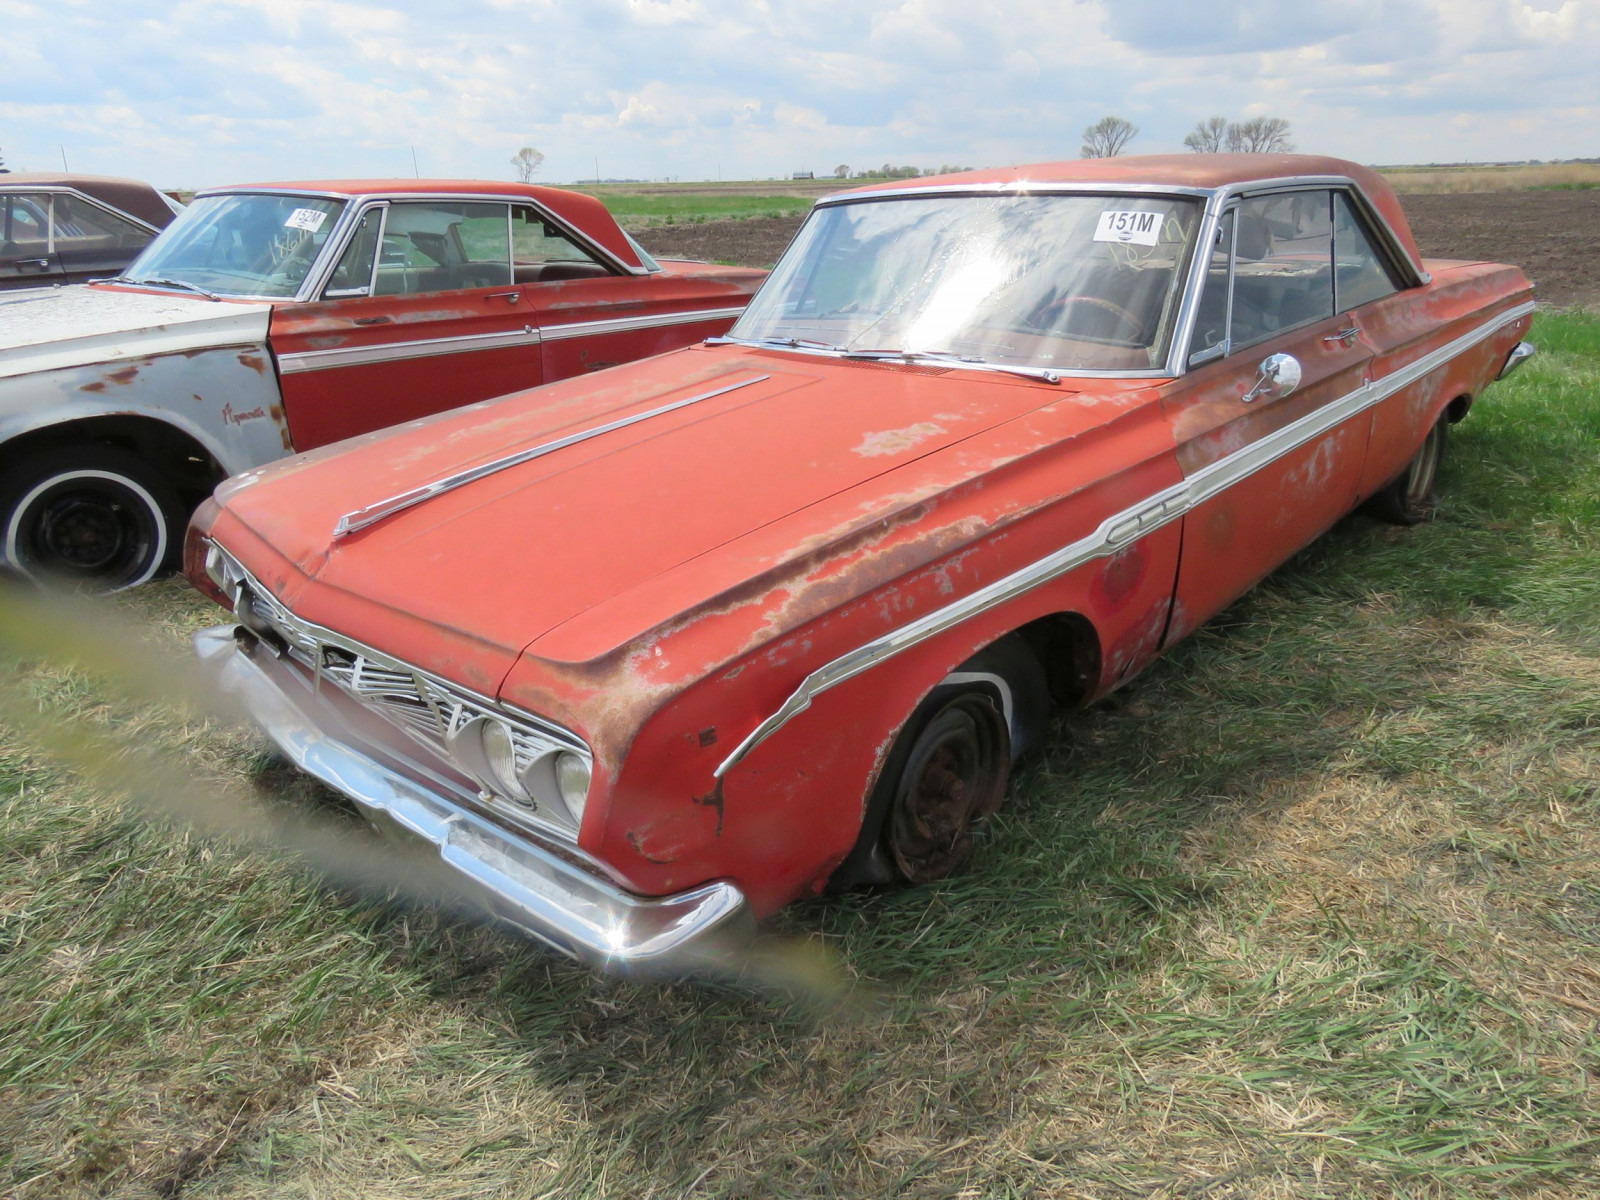 Plymouth Fury 2dr HT - Image 1